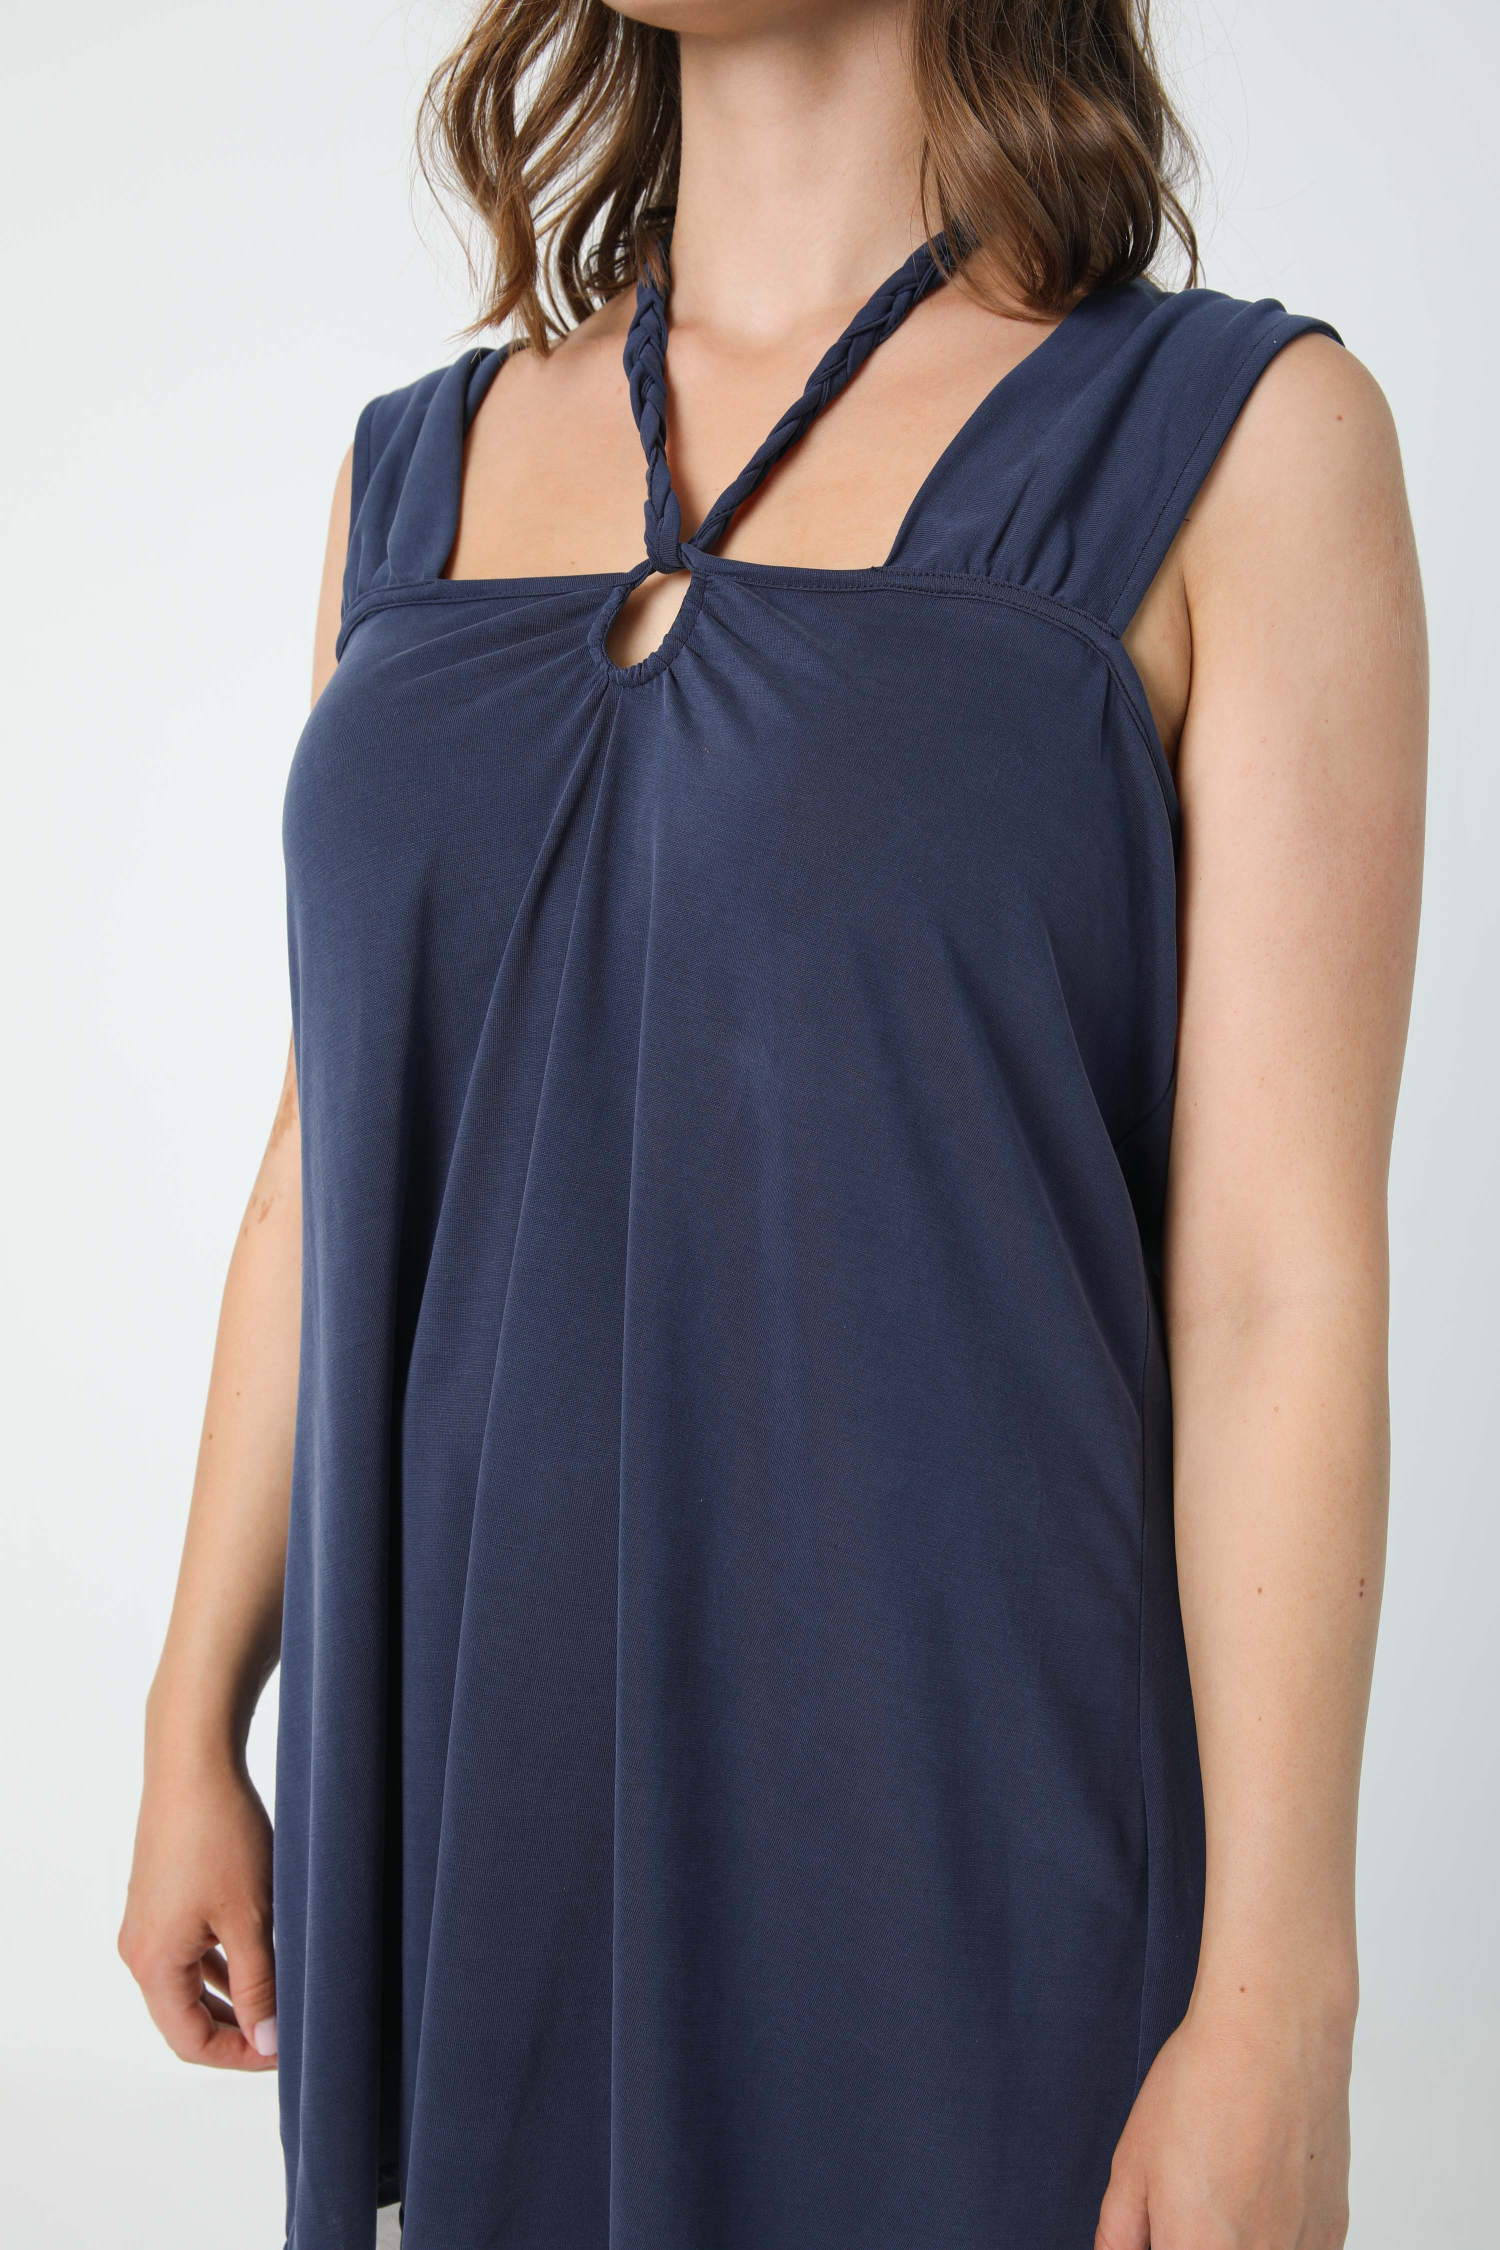 Tank top with wide straps in plain mesh with braid (shipping May 25/30)